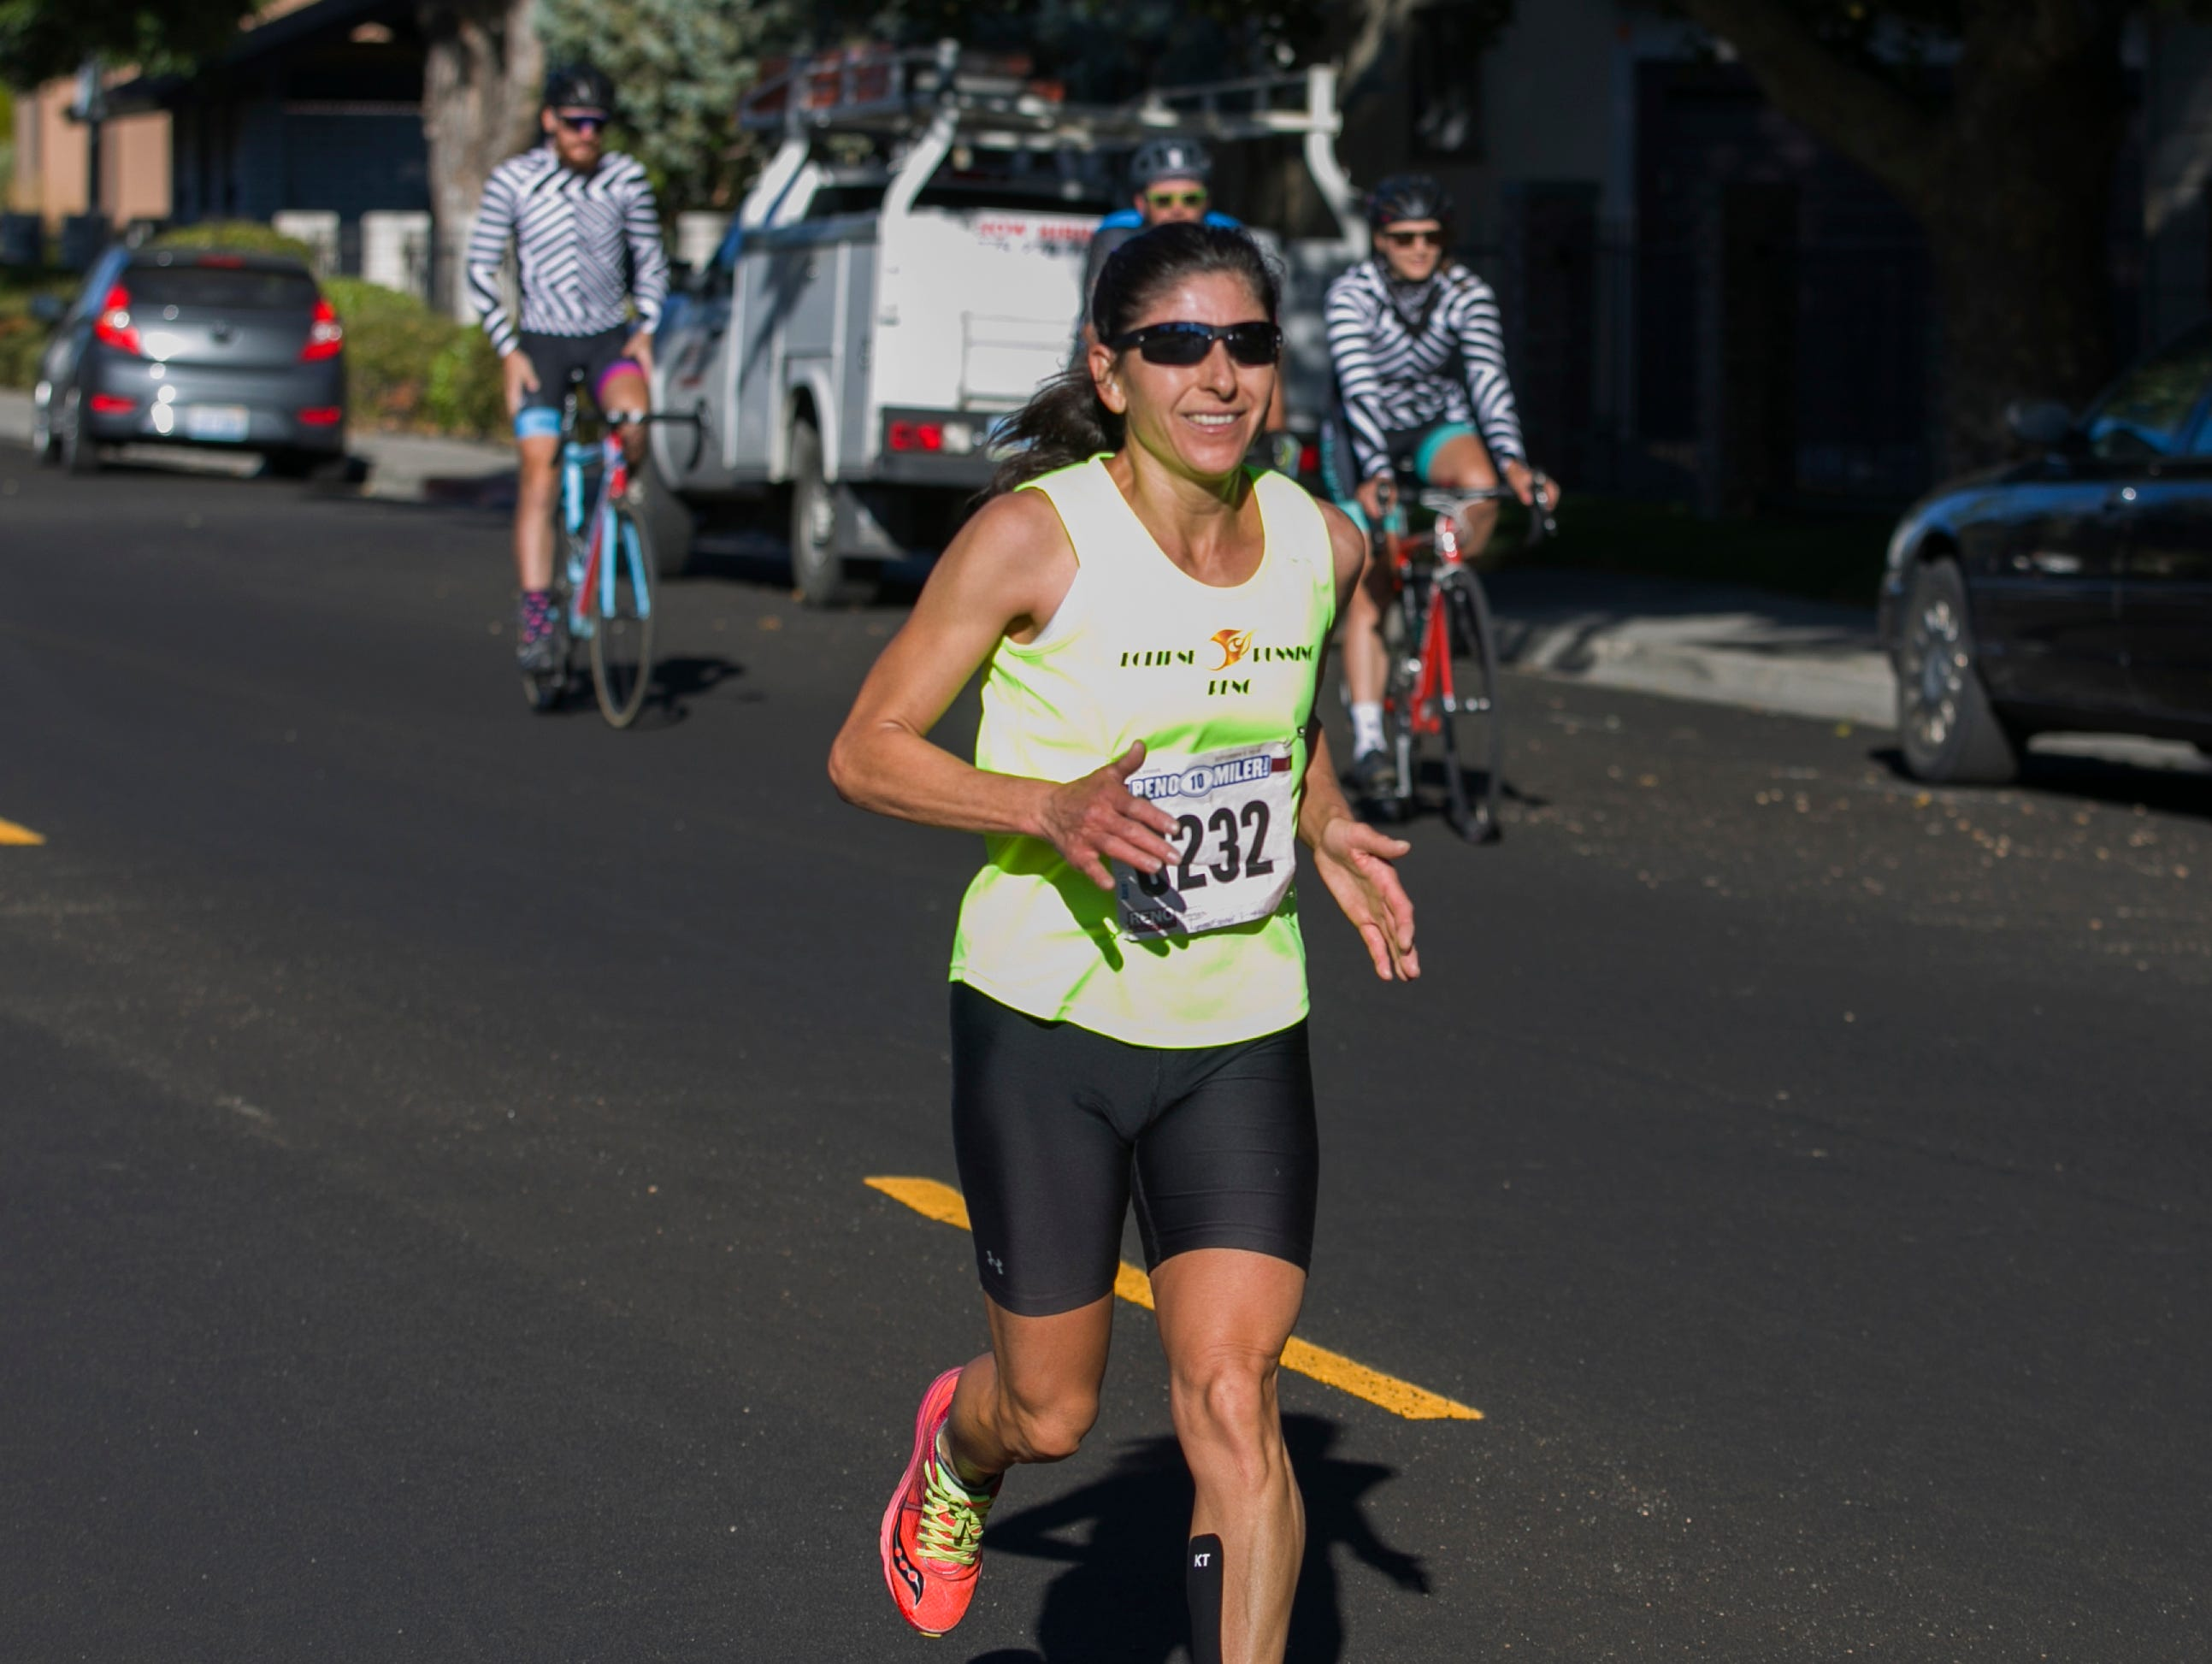 Ramona Sanchez won the women's division of the Reno 10 Mile race as part of the 50th Annual Journal Jog in Reno, Nevada on Sunday, September 9, 2018.